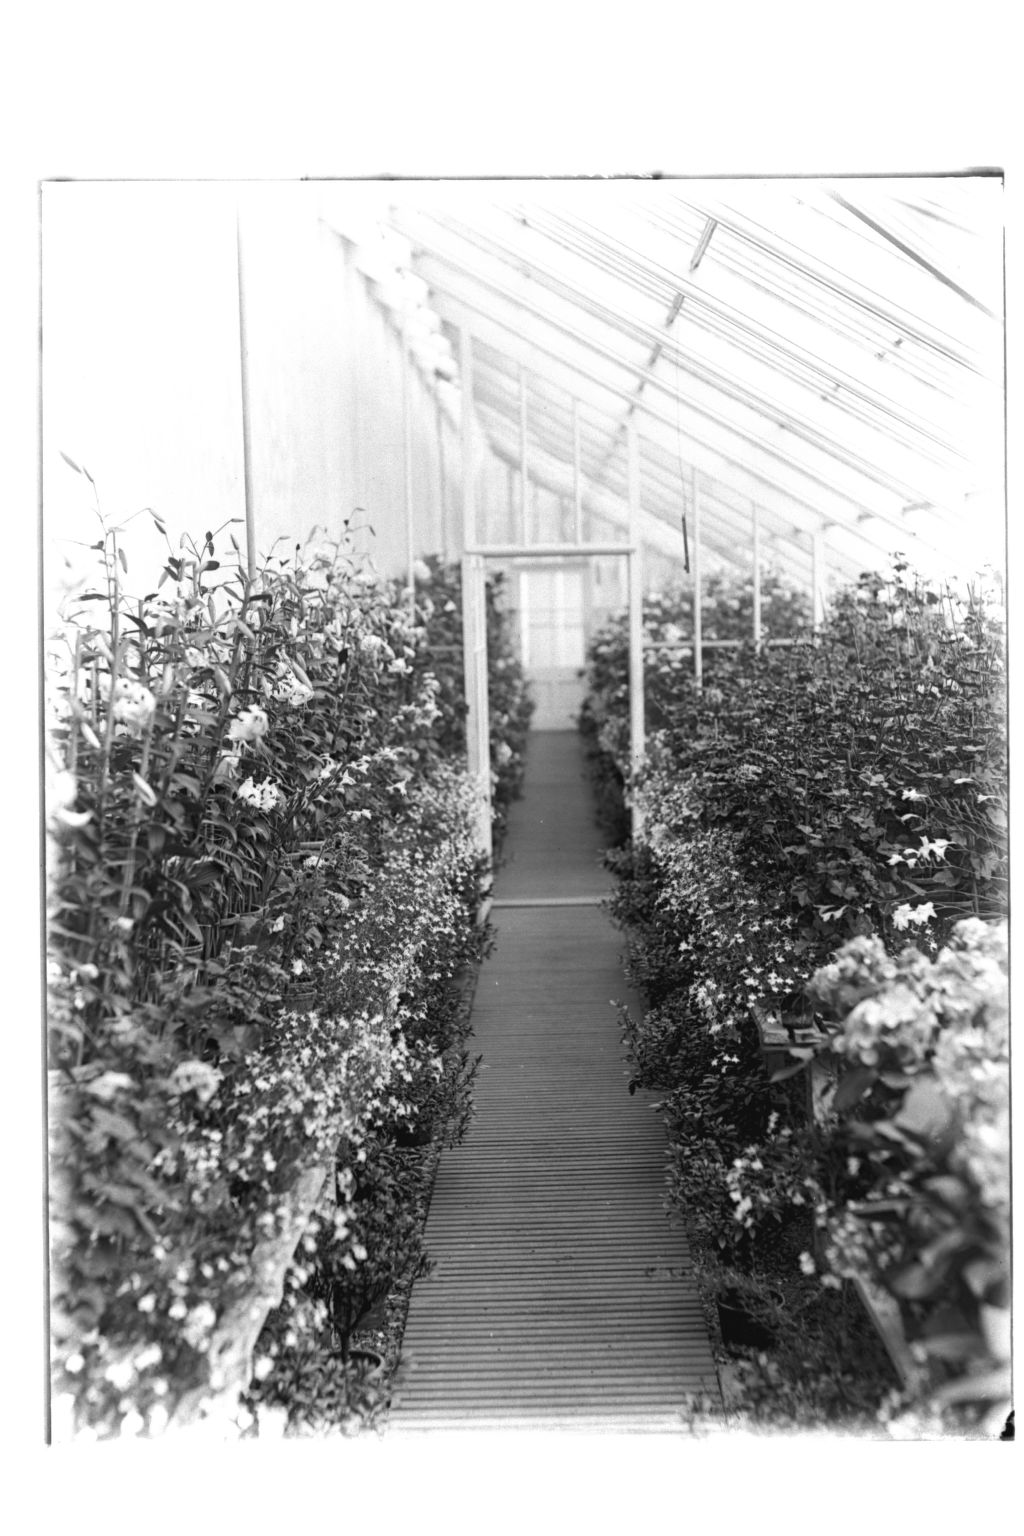 West Greenhouse looking East, Montrave Gardens.